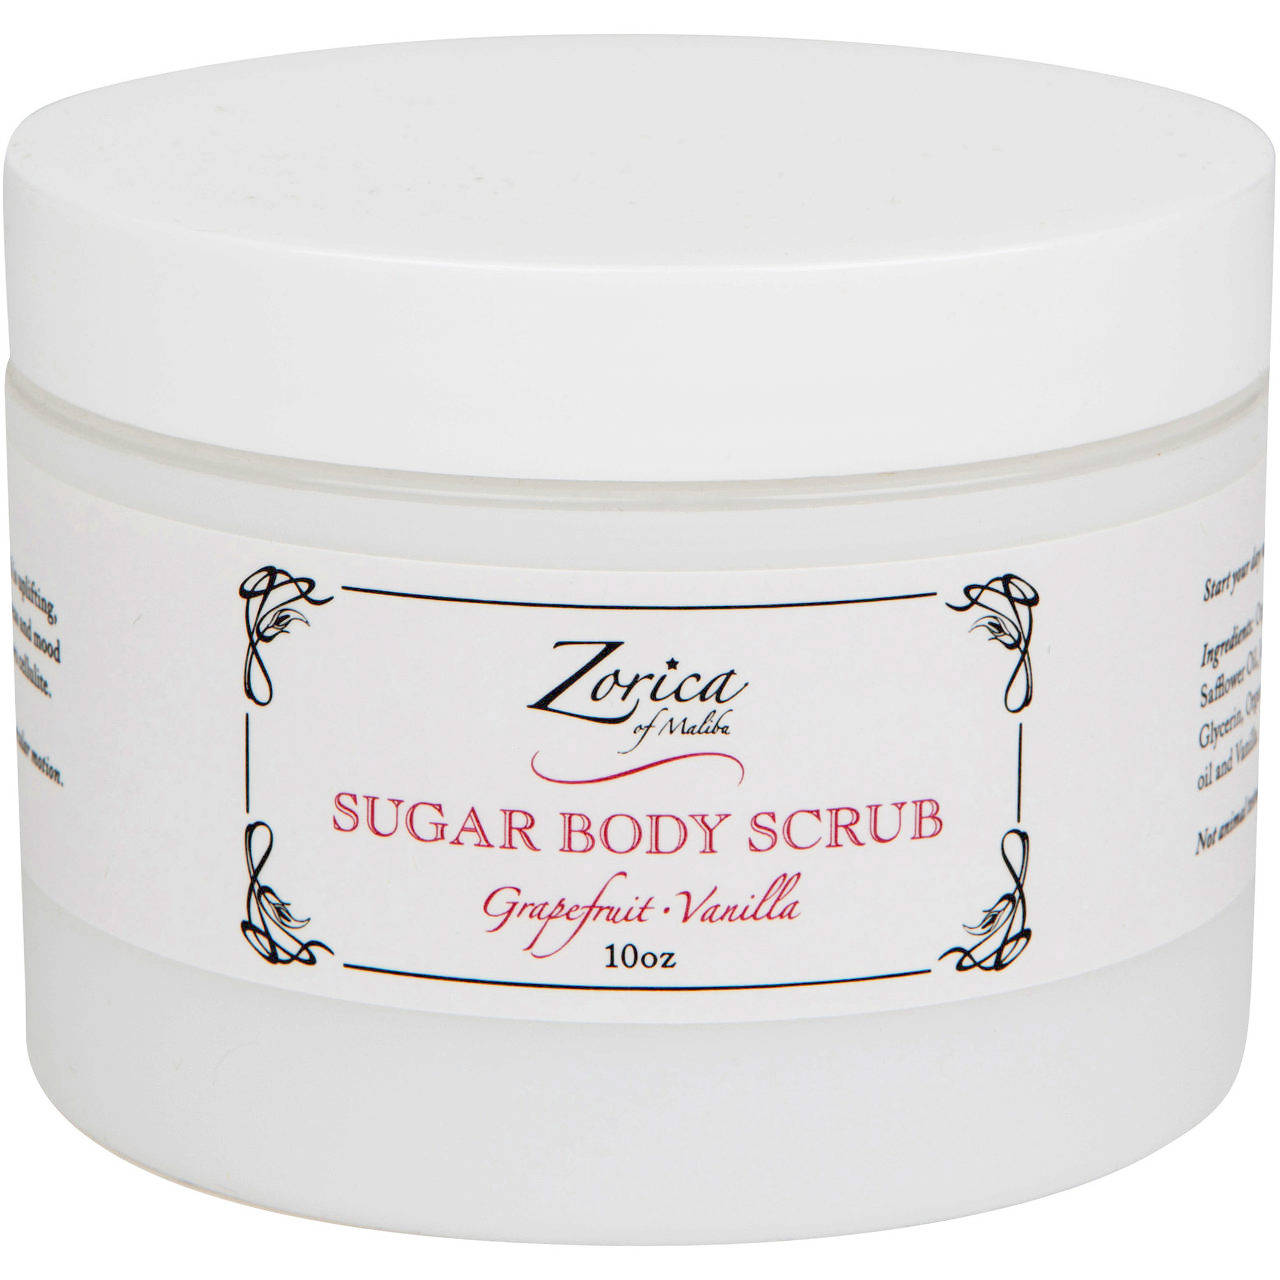 Gratitude Sugar Body Scrub